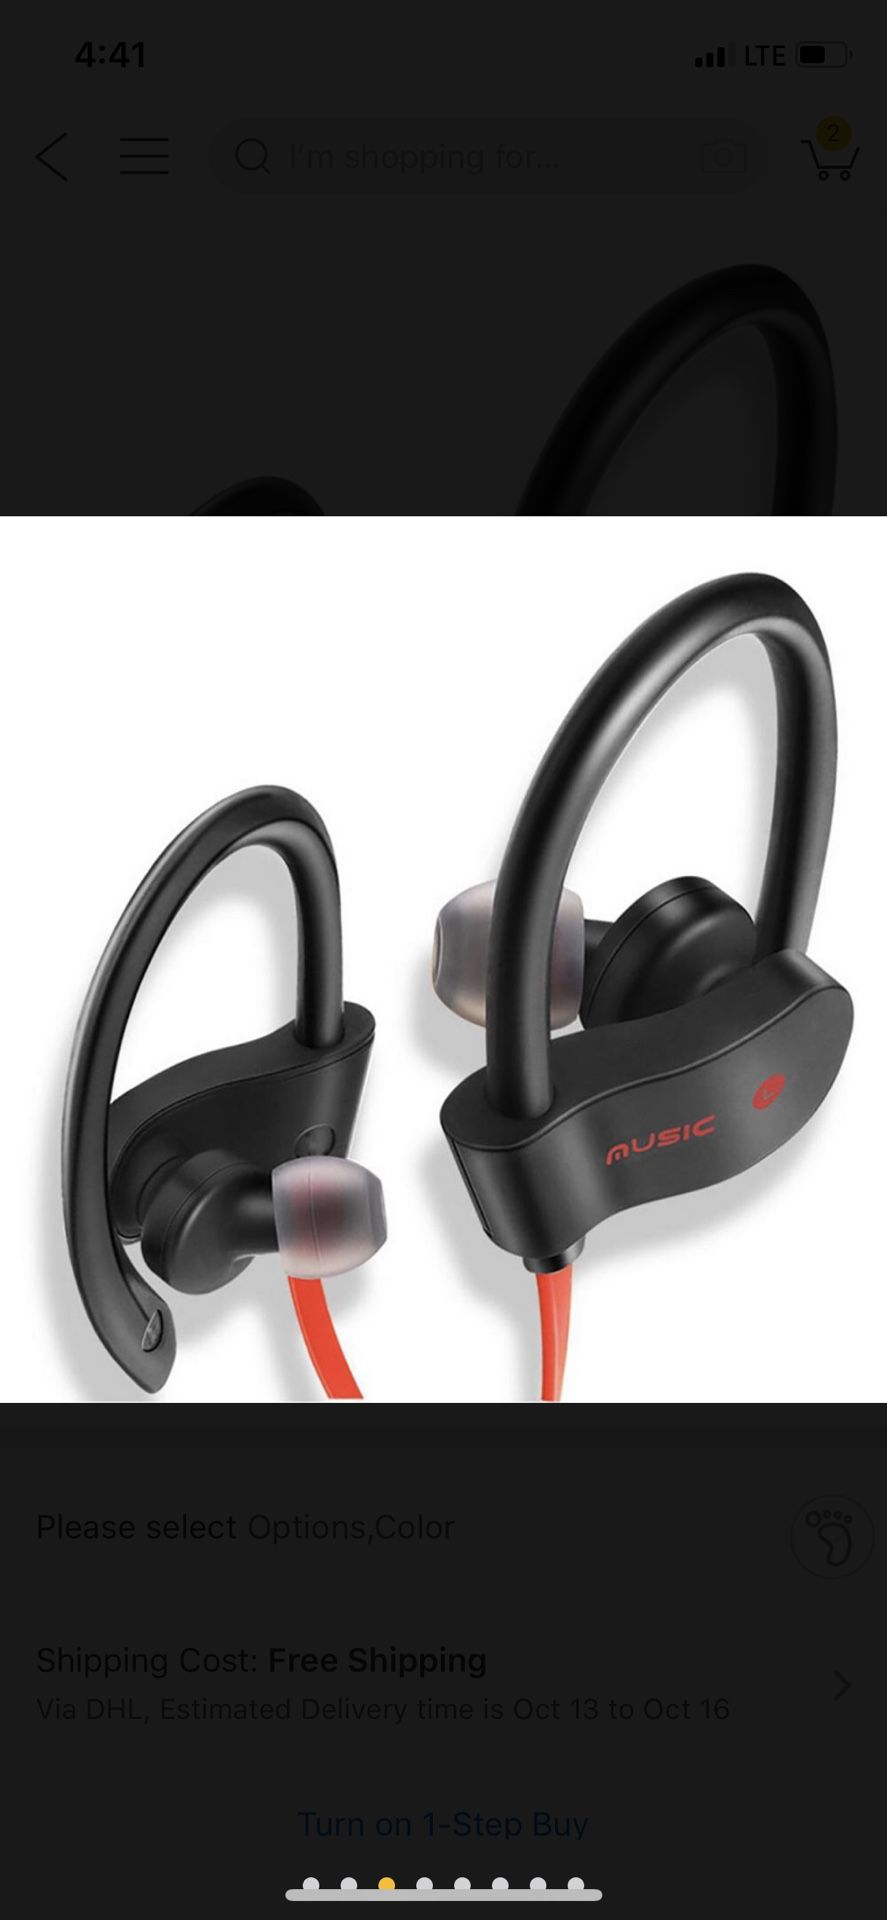 Wireless Bluetooth Sport Headphones Works Handsfree for Phone Calls and Music Compatible w/ iPhone, Samsung and all Android